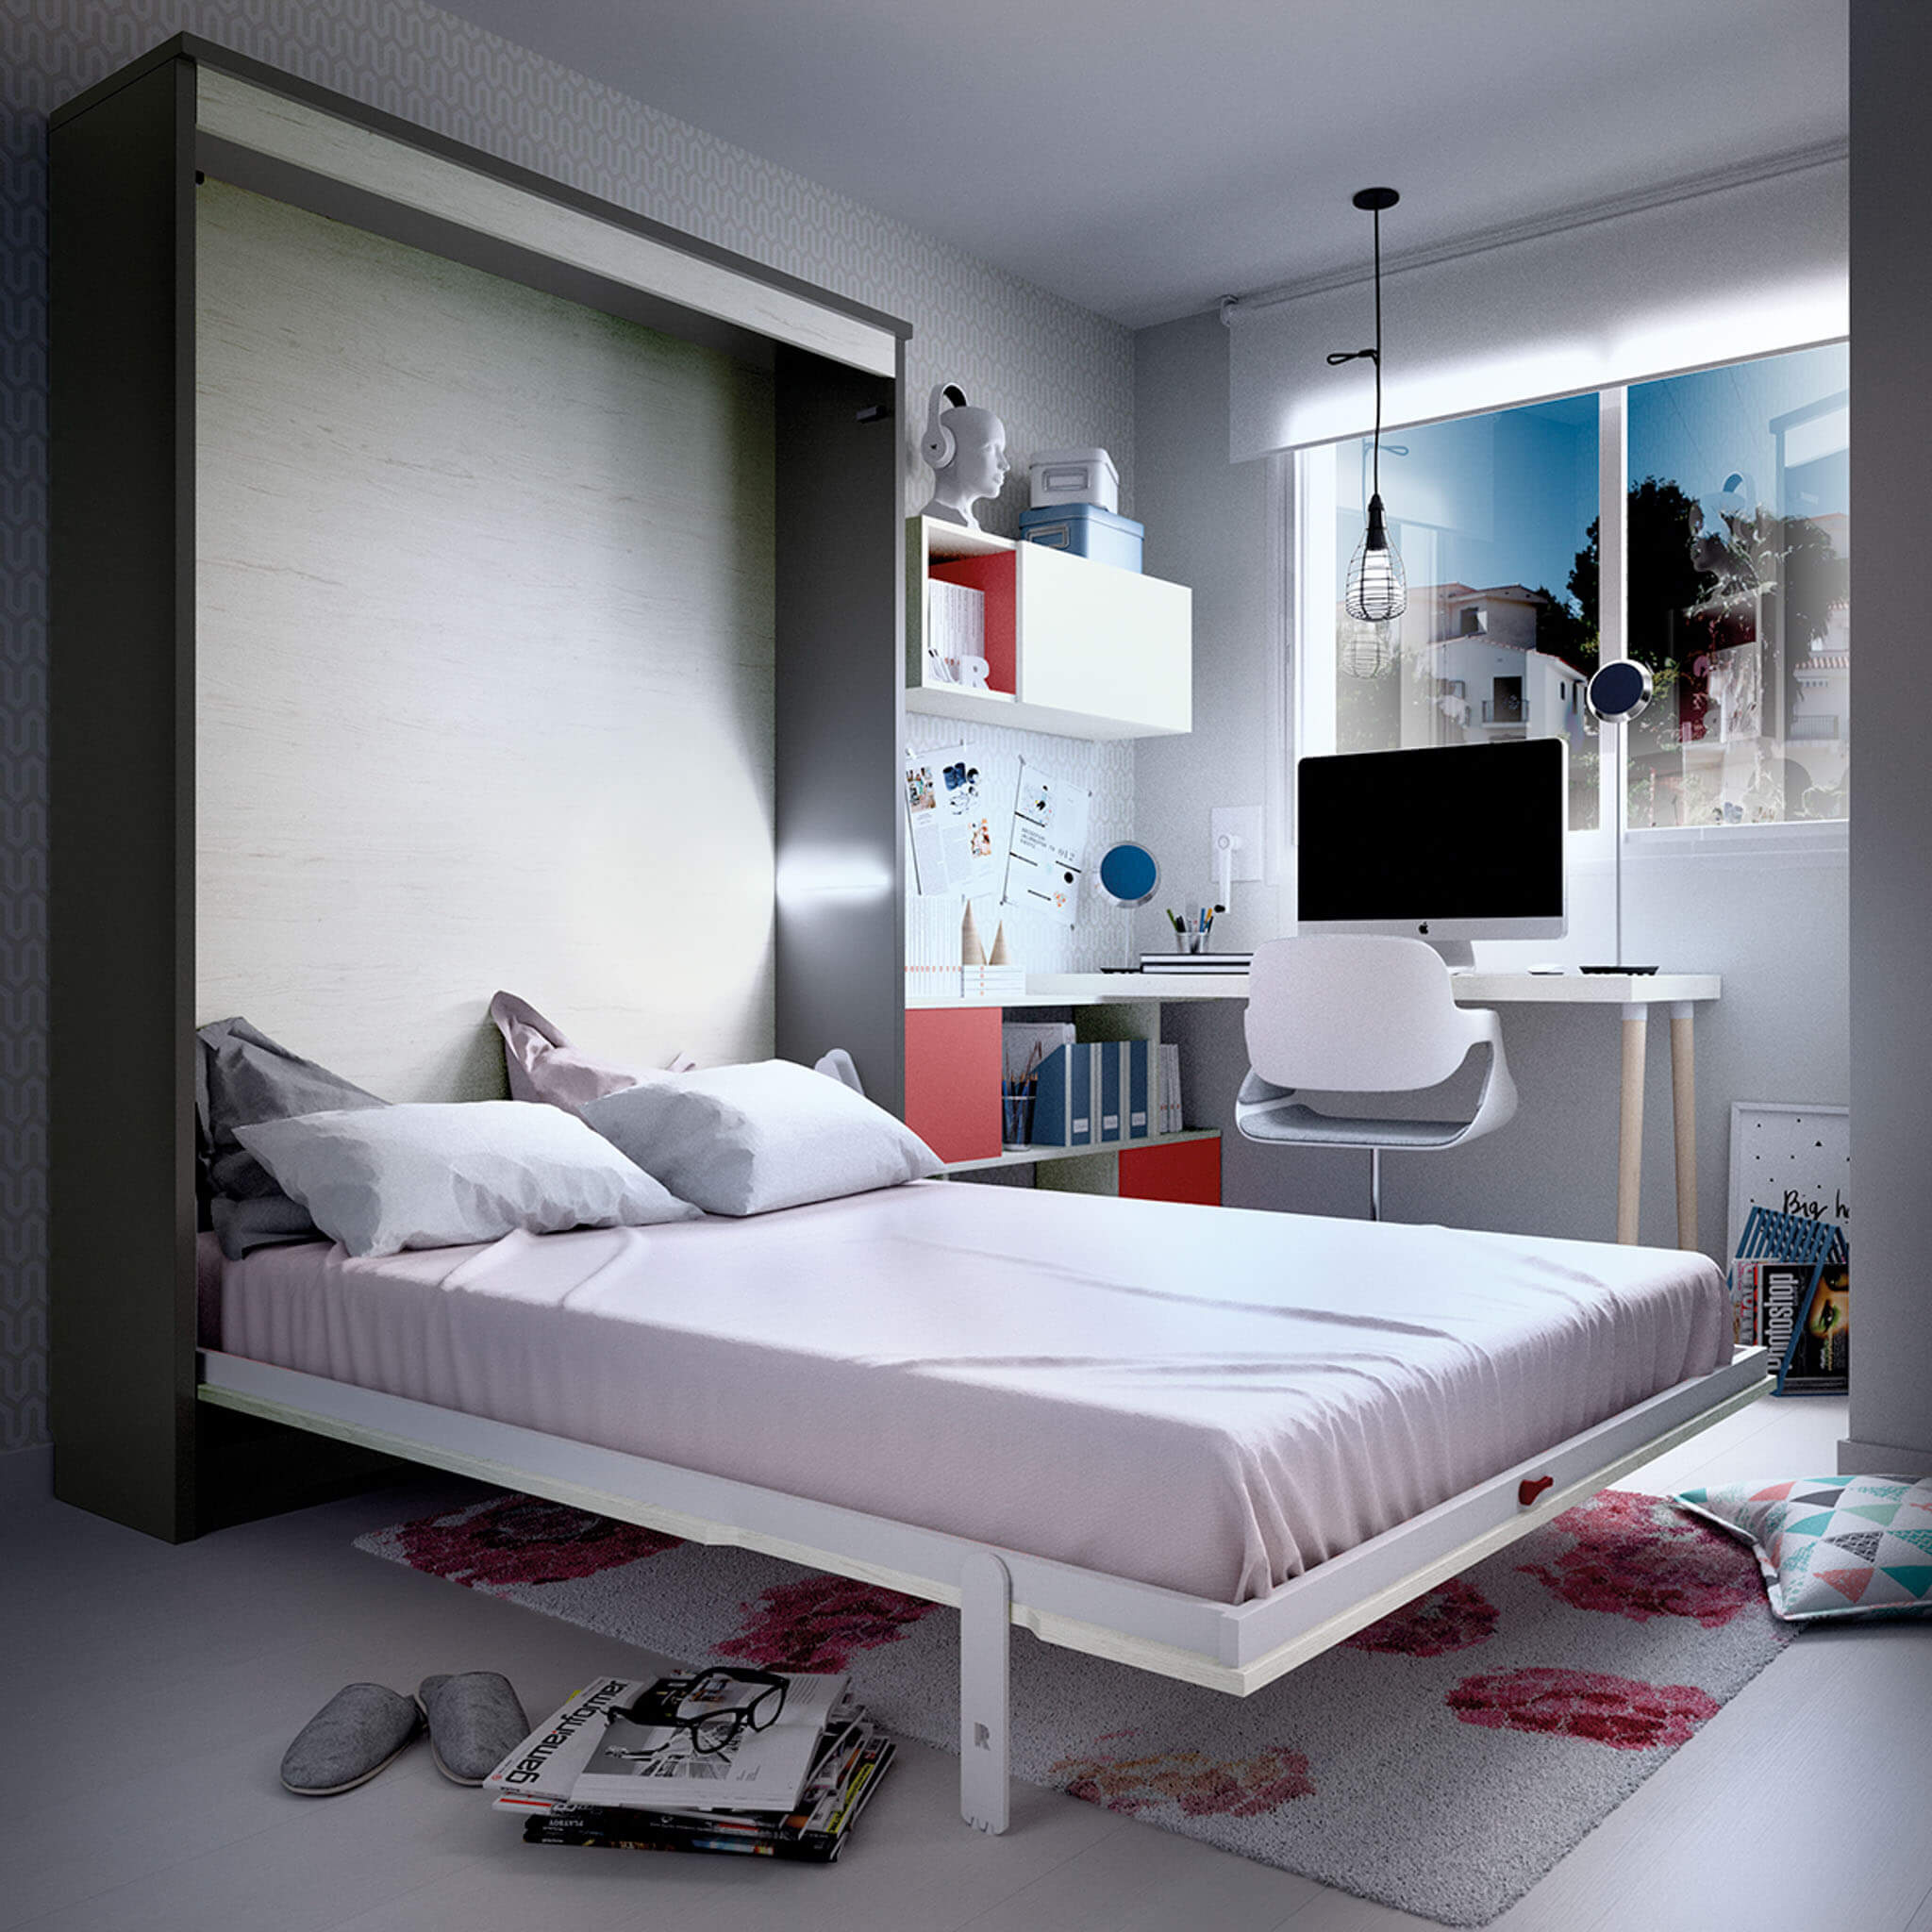 Double wall bed Vertical